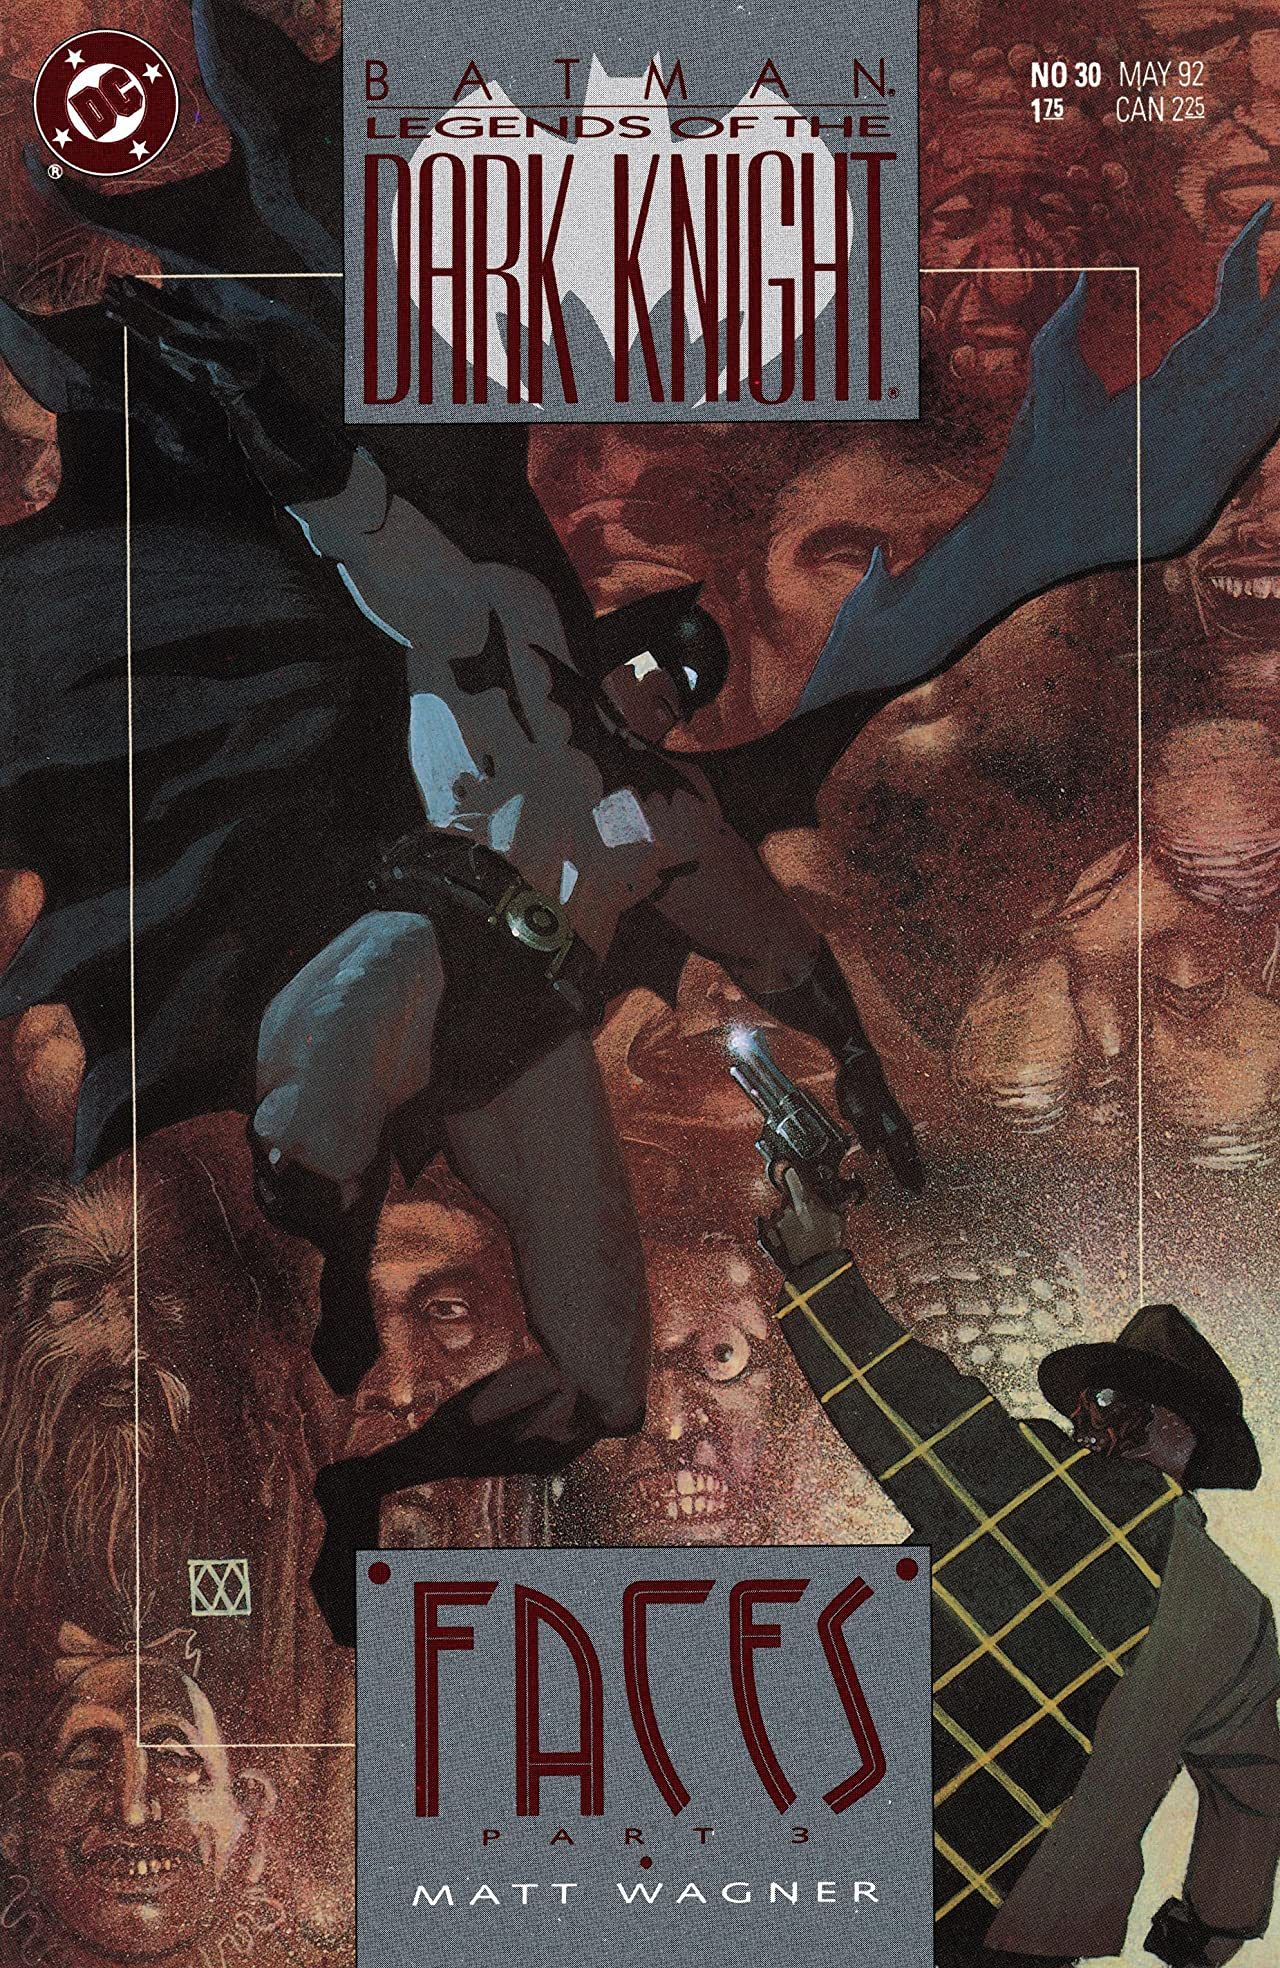 Batman: Legends of the Dark Knight #30